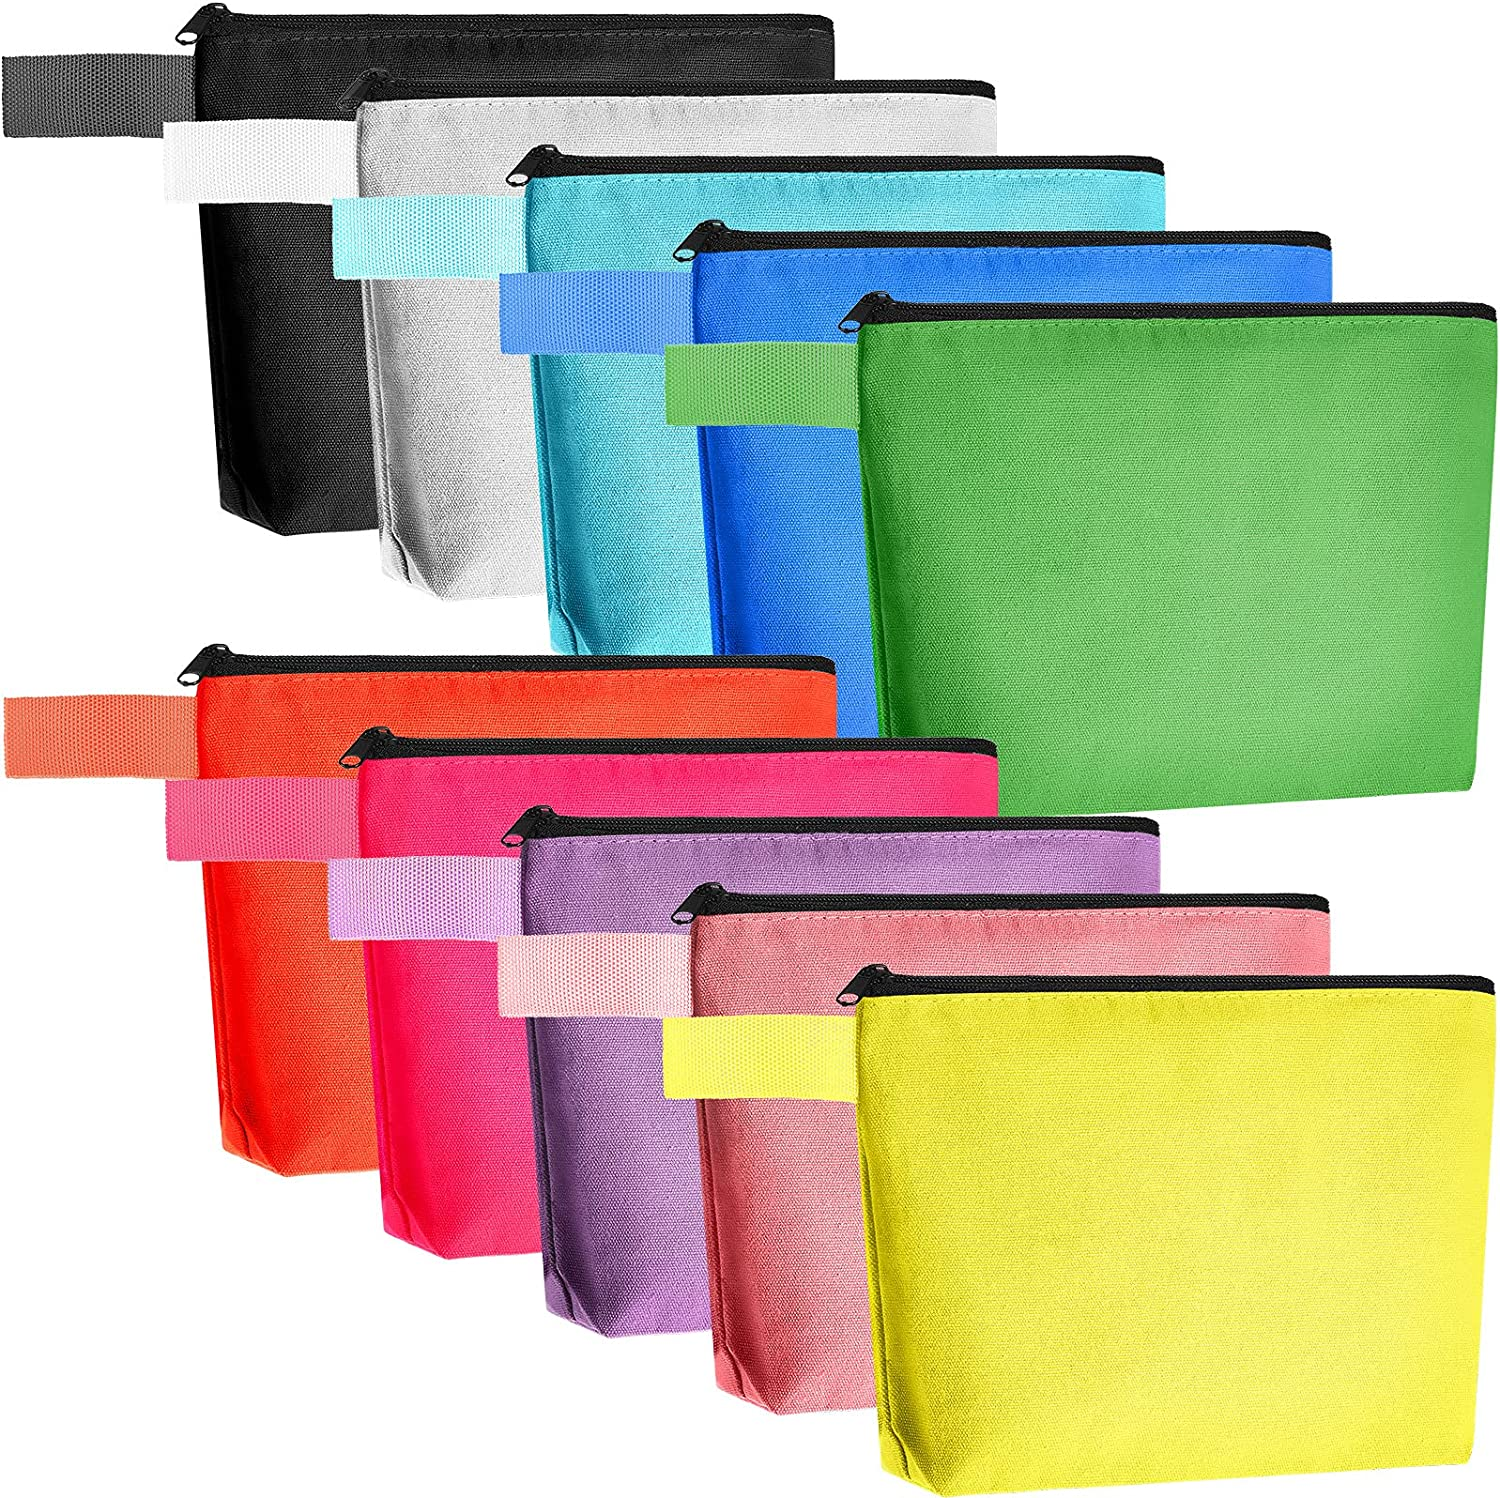 10 Pieces Trust Canvas Cosmetic Super sale period limited Bags Makeup B Plain Pouch Blank